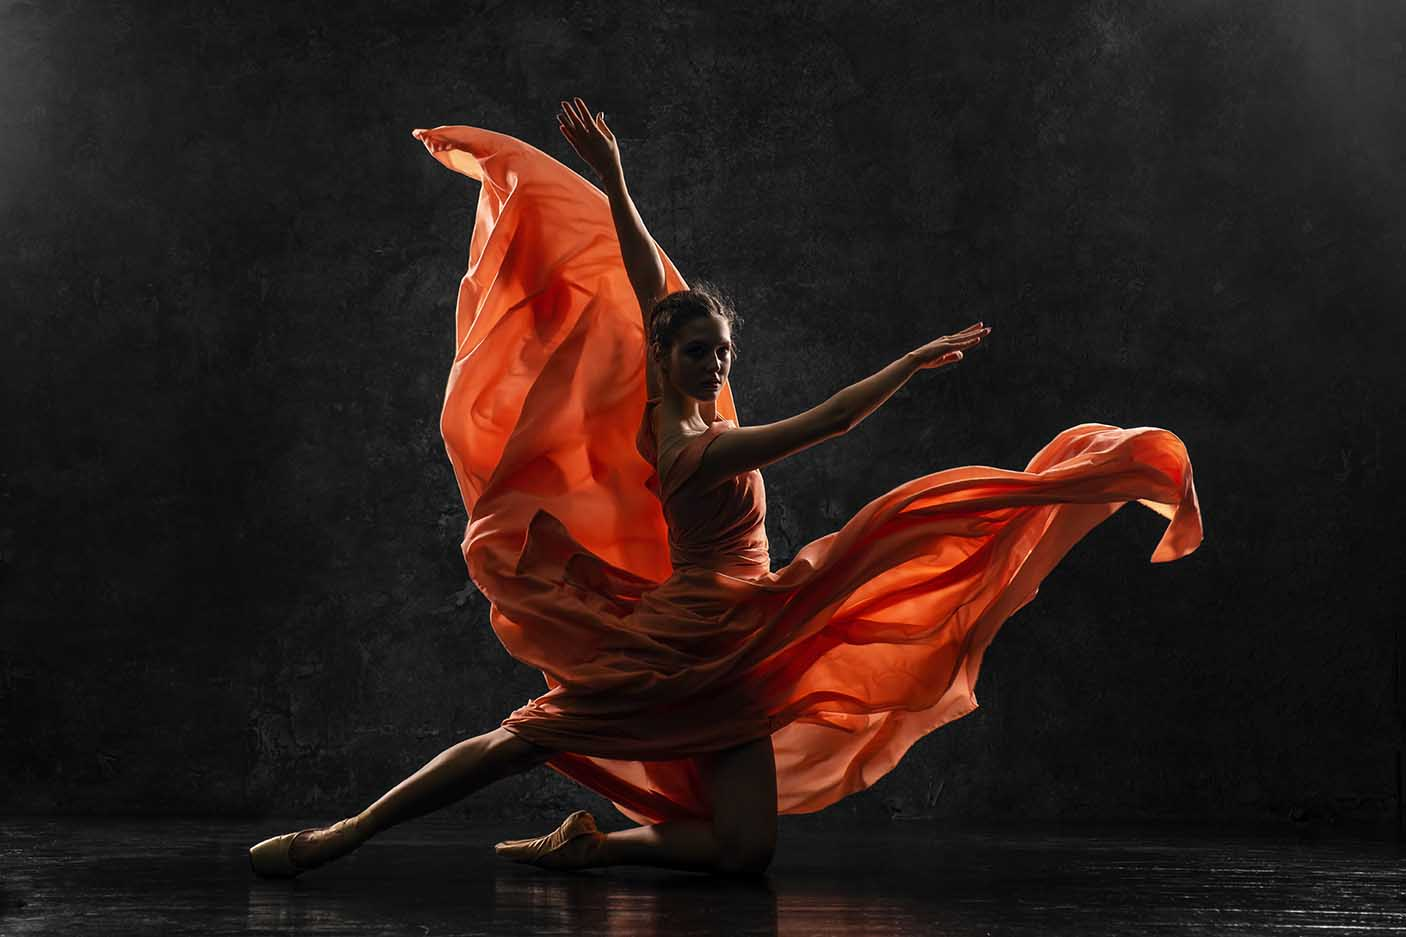 Silhouette photo of a young ballet dancer dressed in a long peach dress, pointe shoes with ribbons.